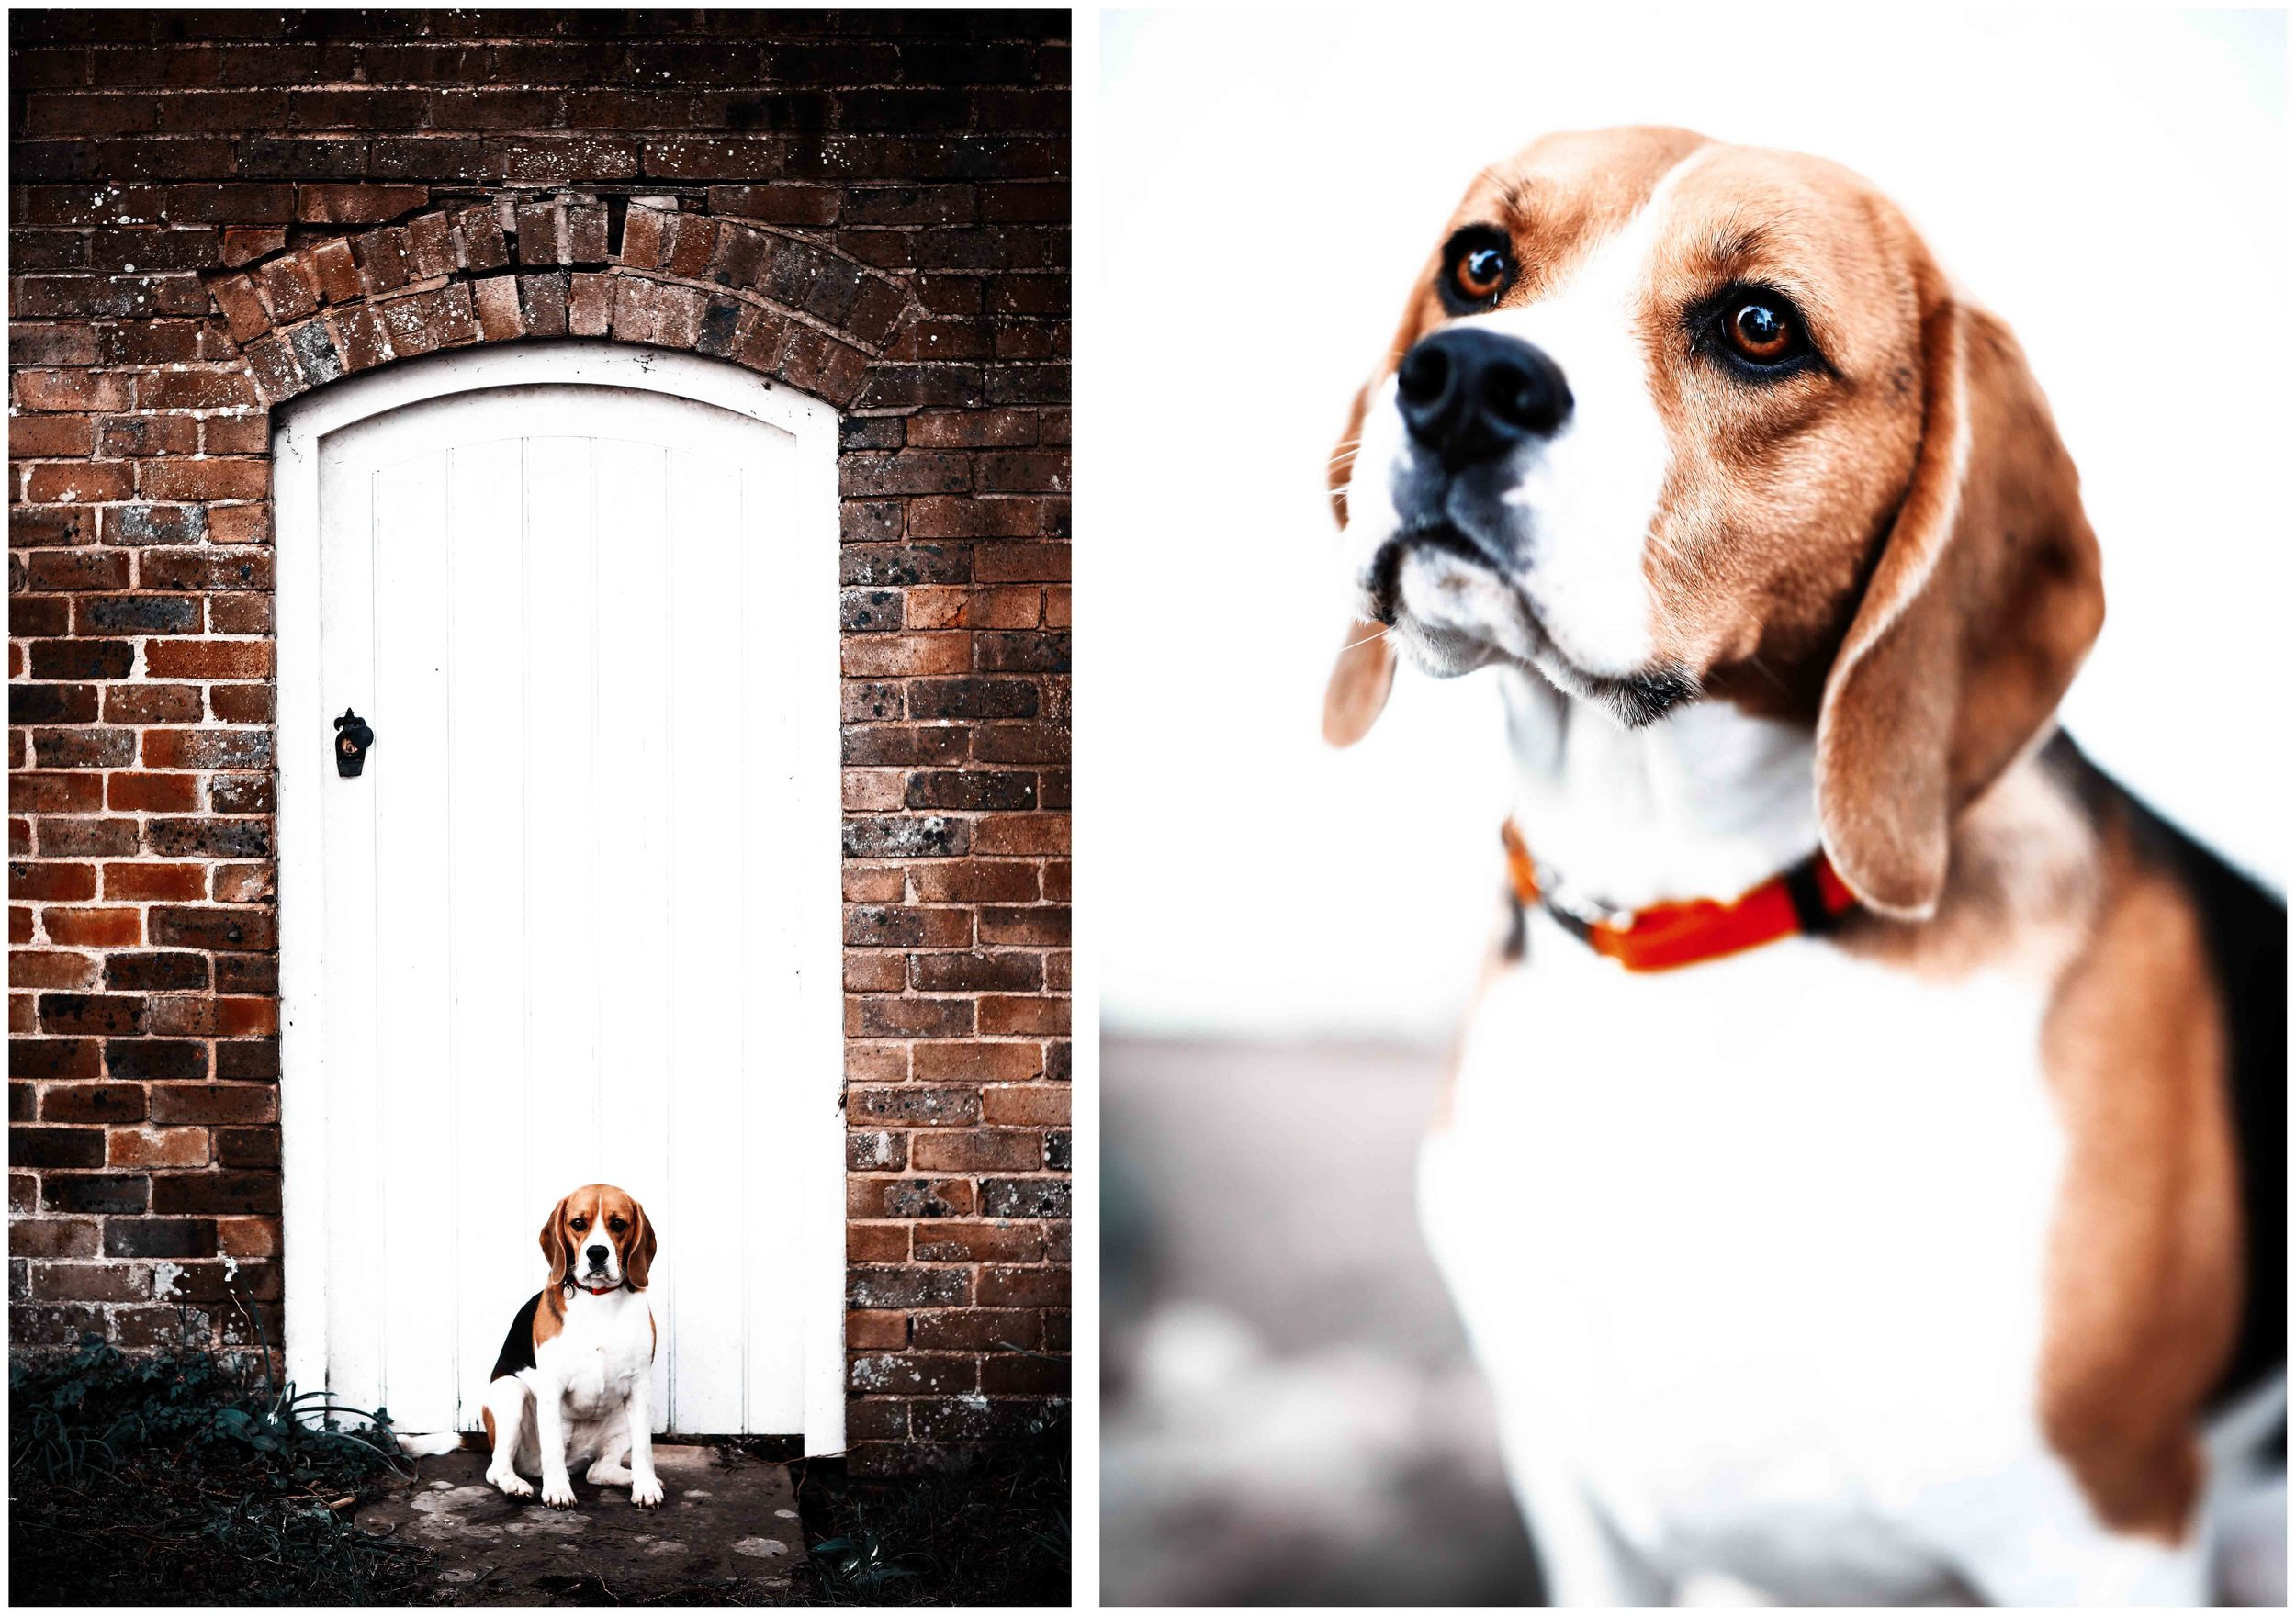 Dogs_April_2016_composite4_RS.jpg